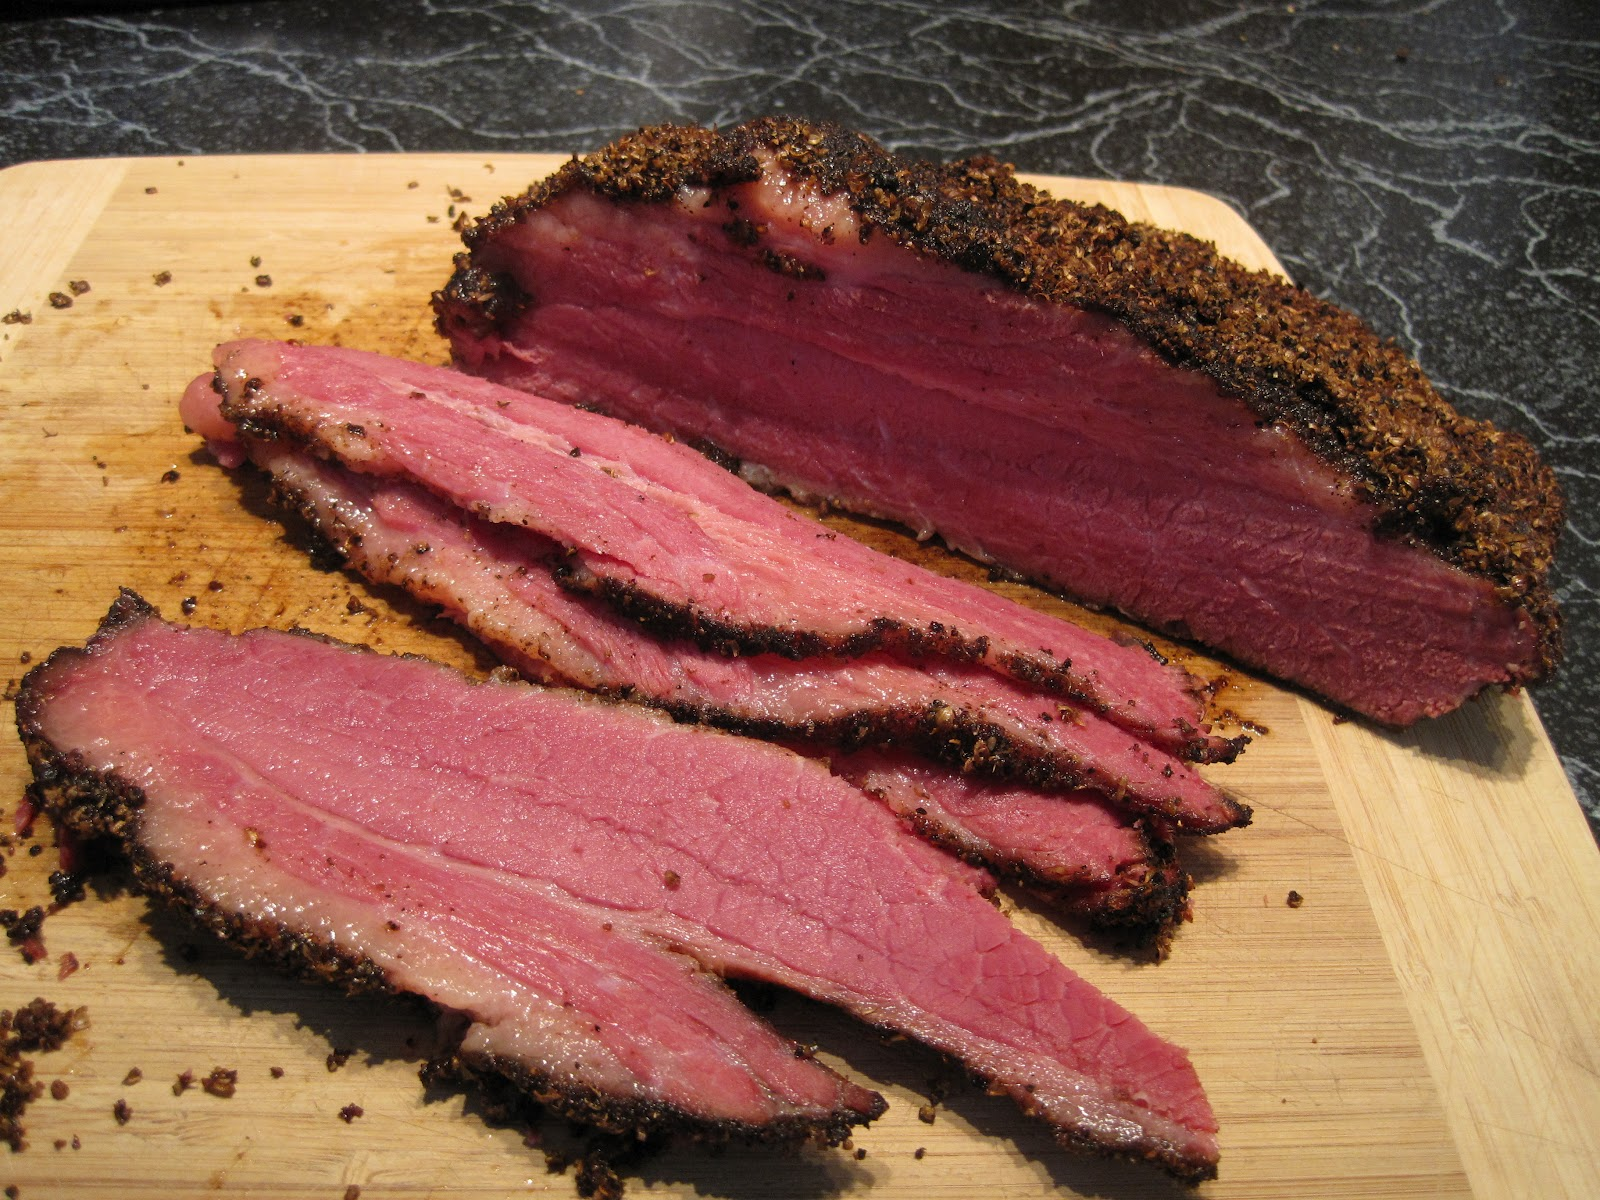 My View: The Perfect Homemade Pastrami